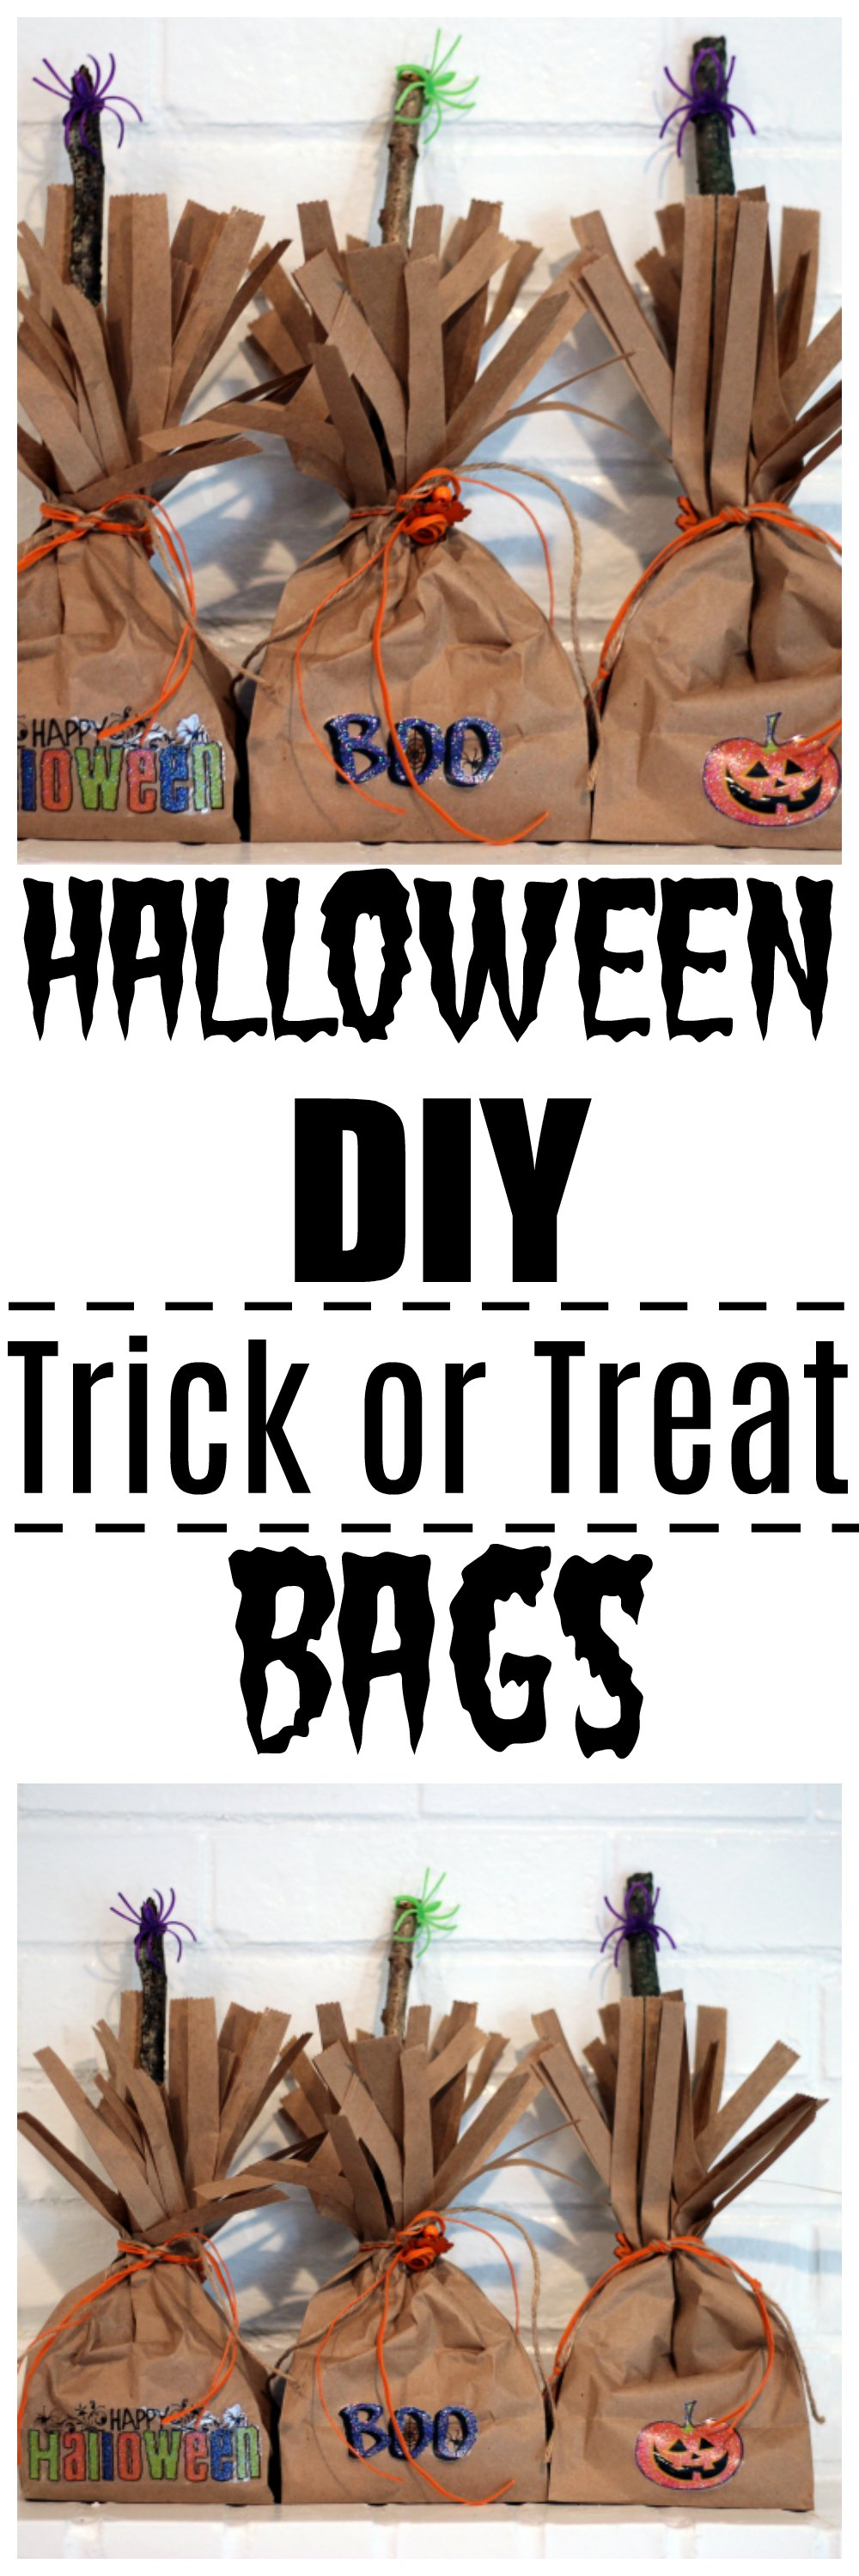 simple craft halloween DIY trick or treat bags